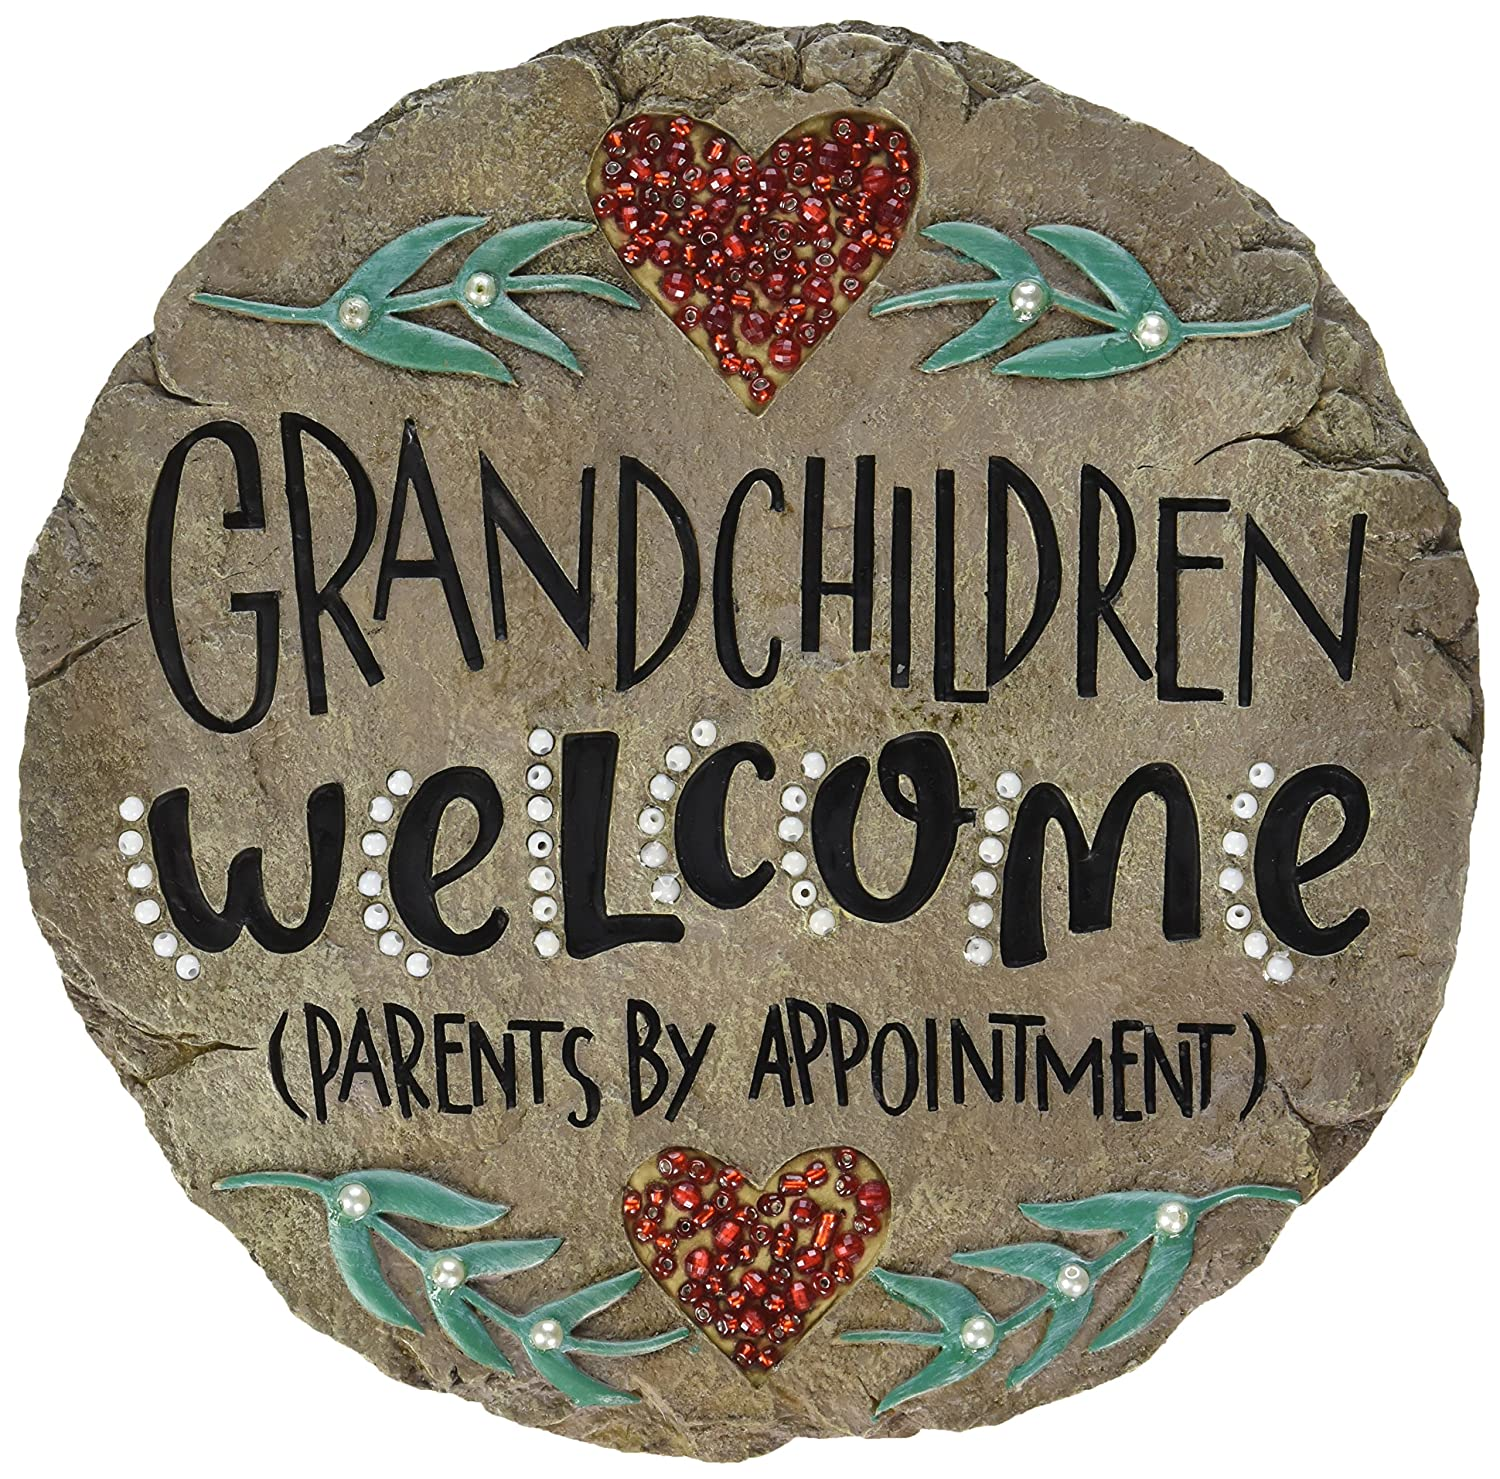 Carson Home Accents Beadworks Grandchildren Welcome Garden Stone (10154)